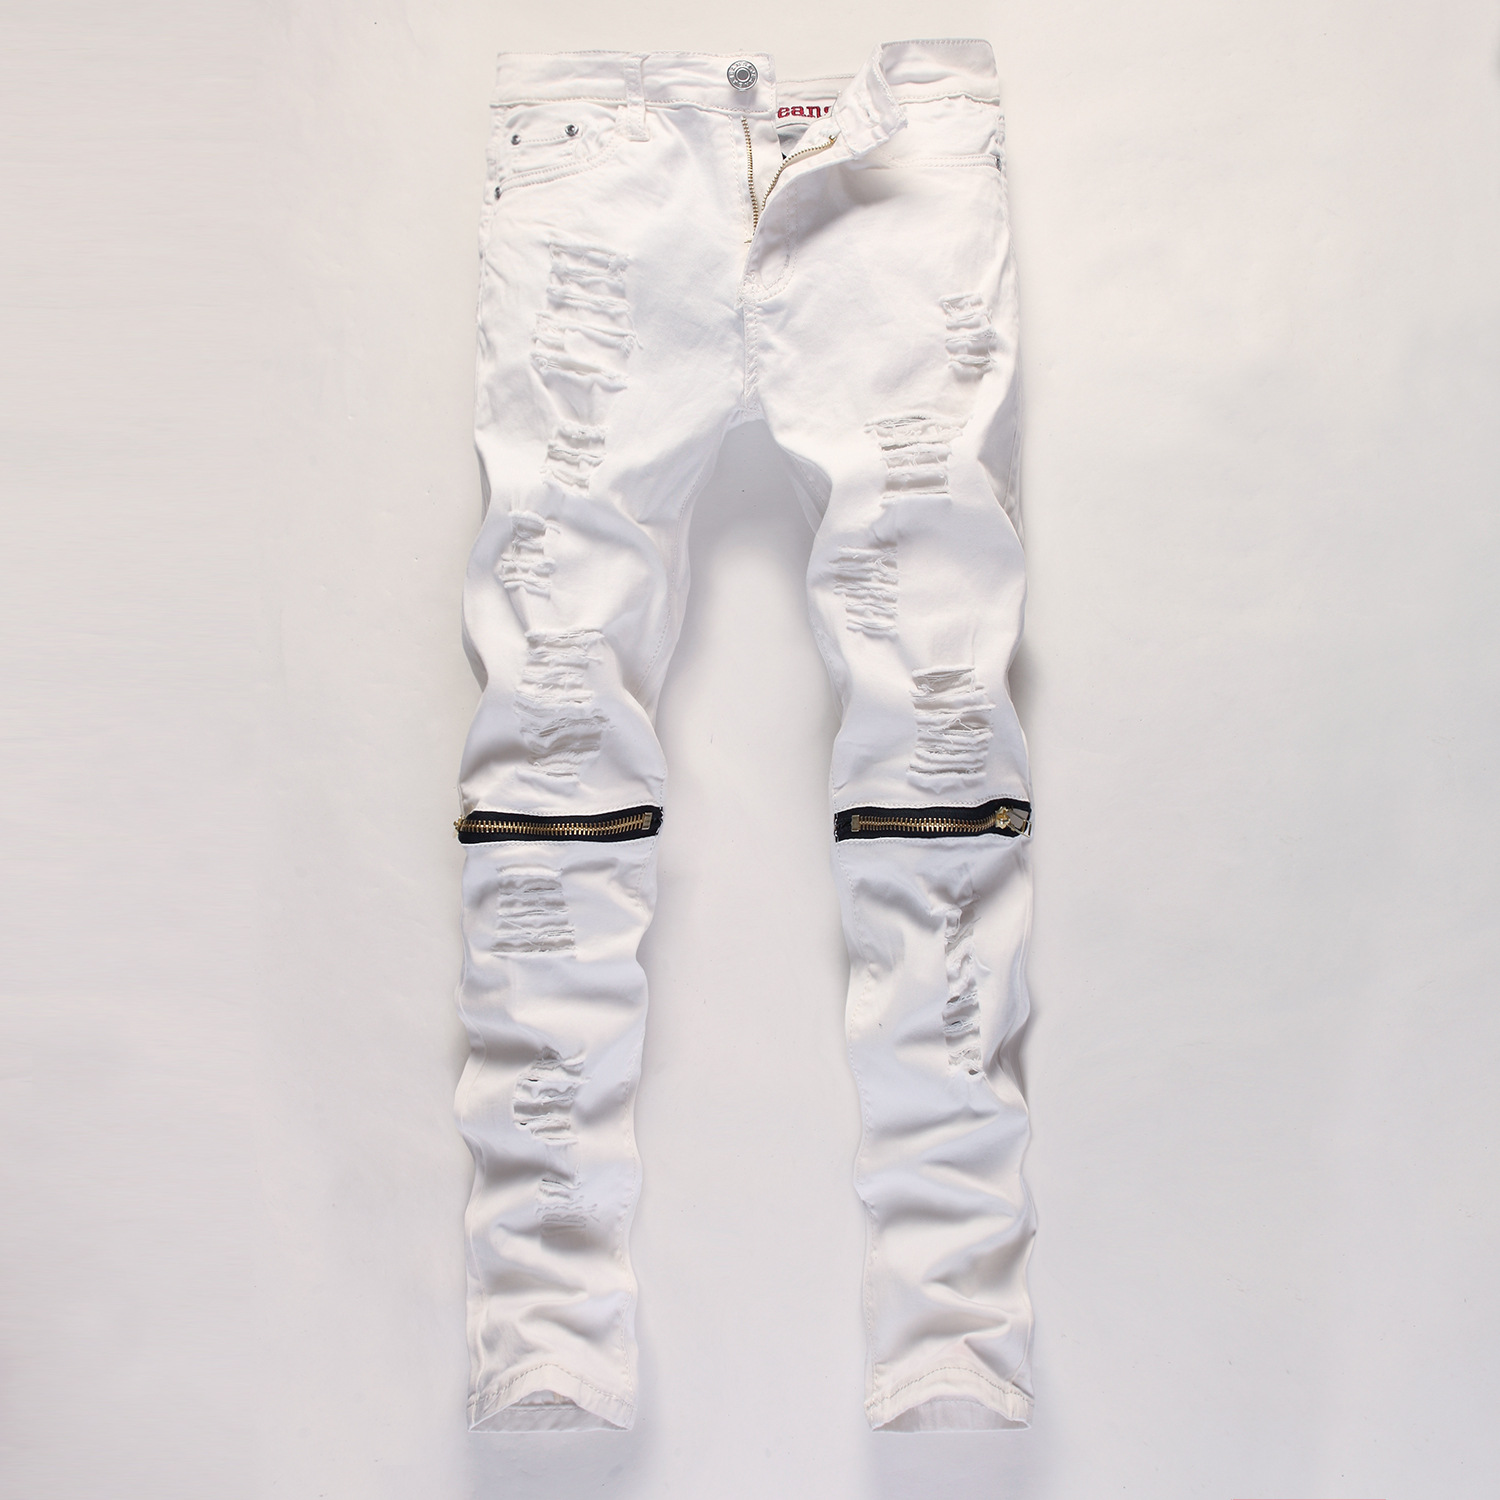 d408c2fc197 Fashion Men's Ripped Hole Denim Jeans White Black Red Desinger Slim Fit  Contrasted Jeans Men Distressed Jeans Pants | The Bargain Paradise